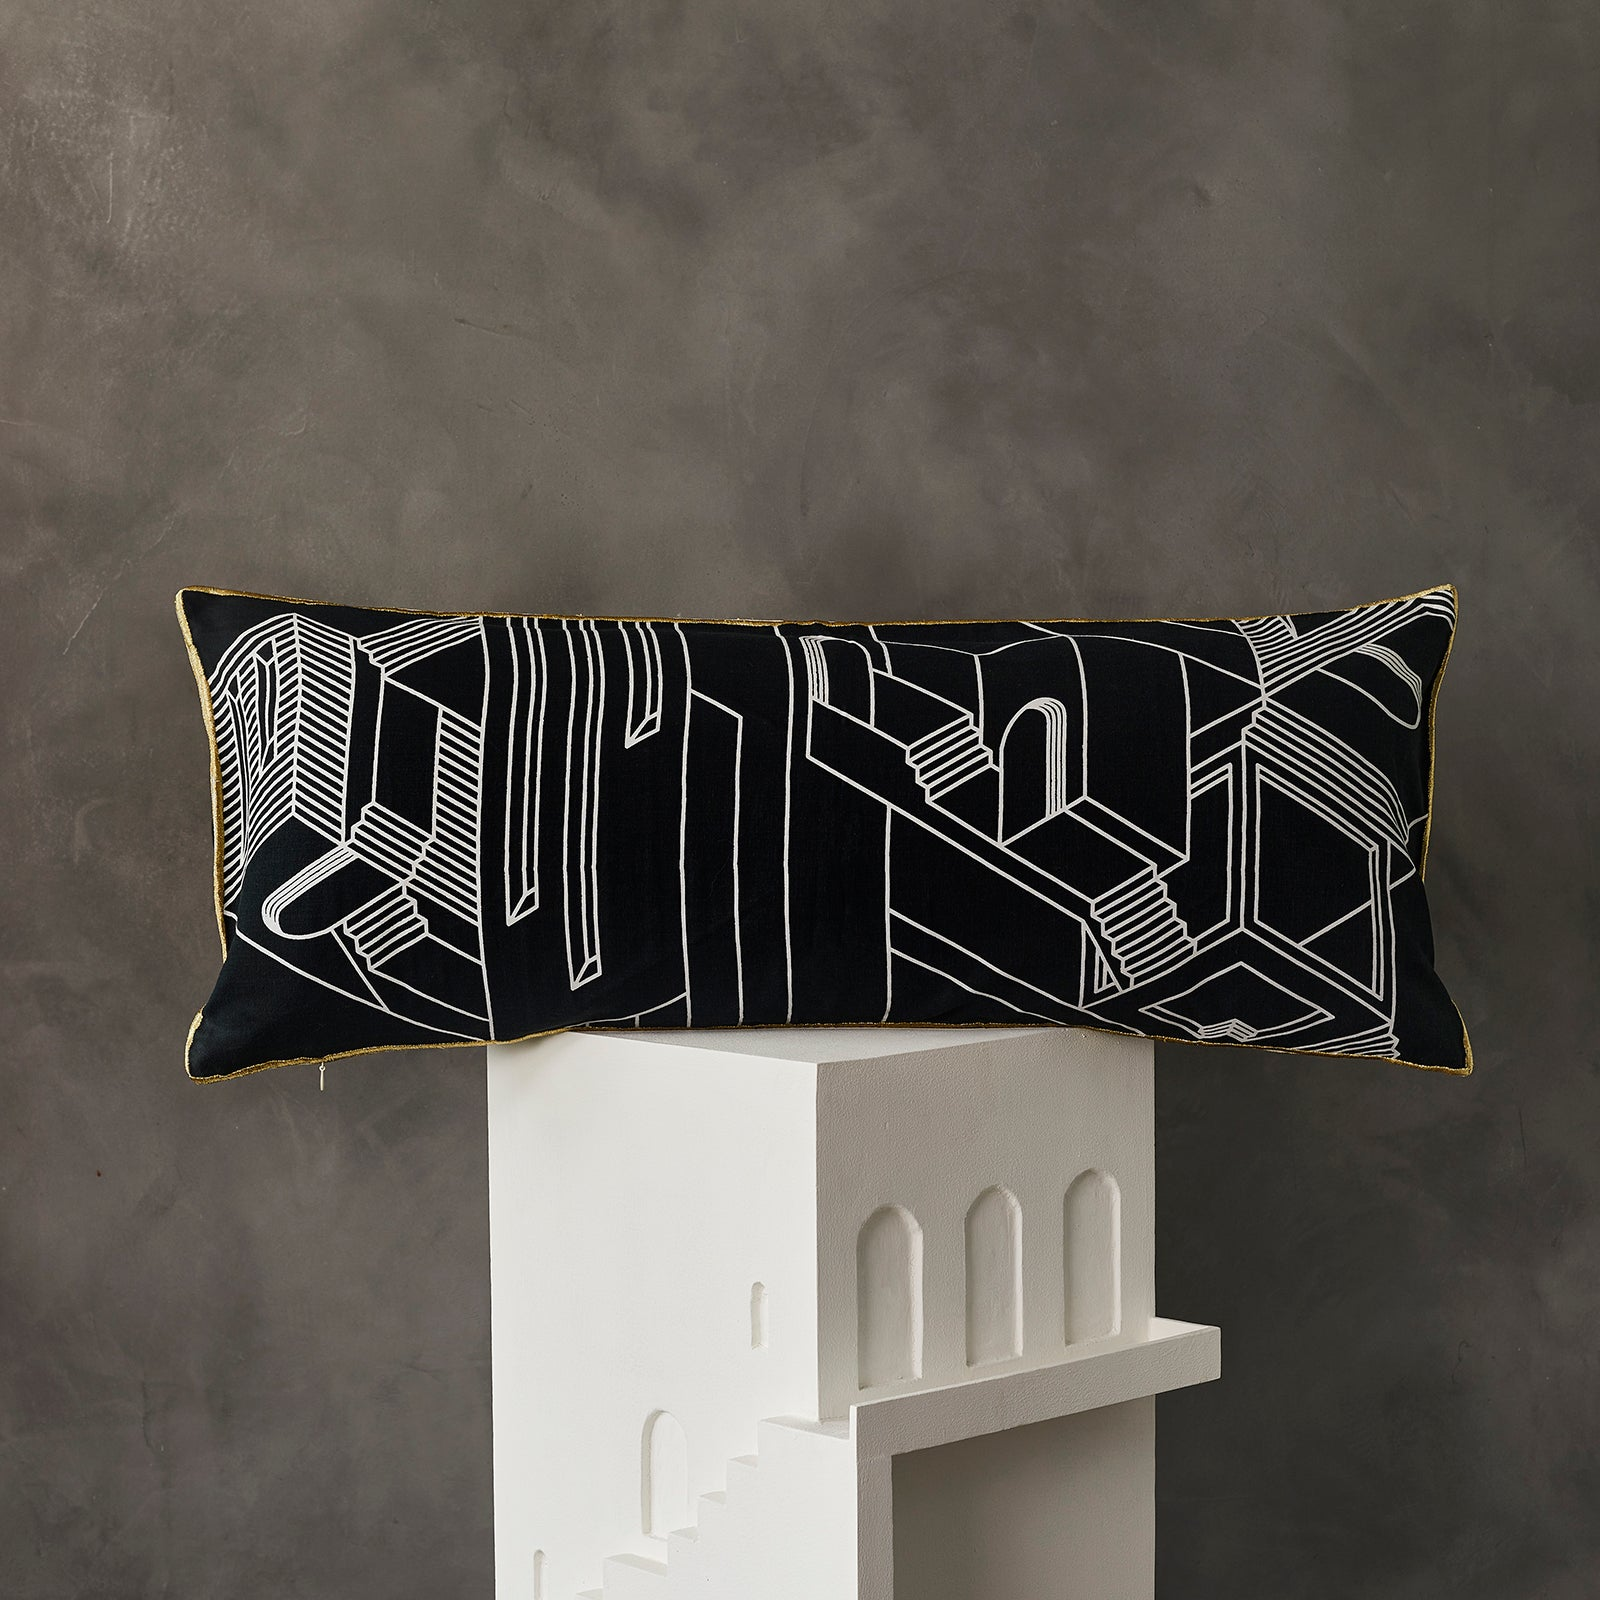 2 Faced Cushion - Black Streetscape